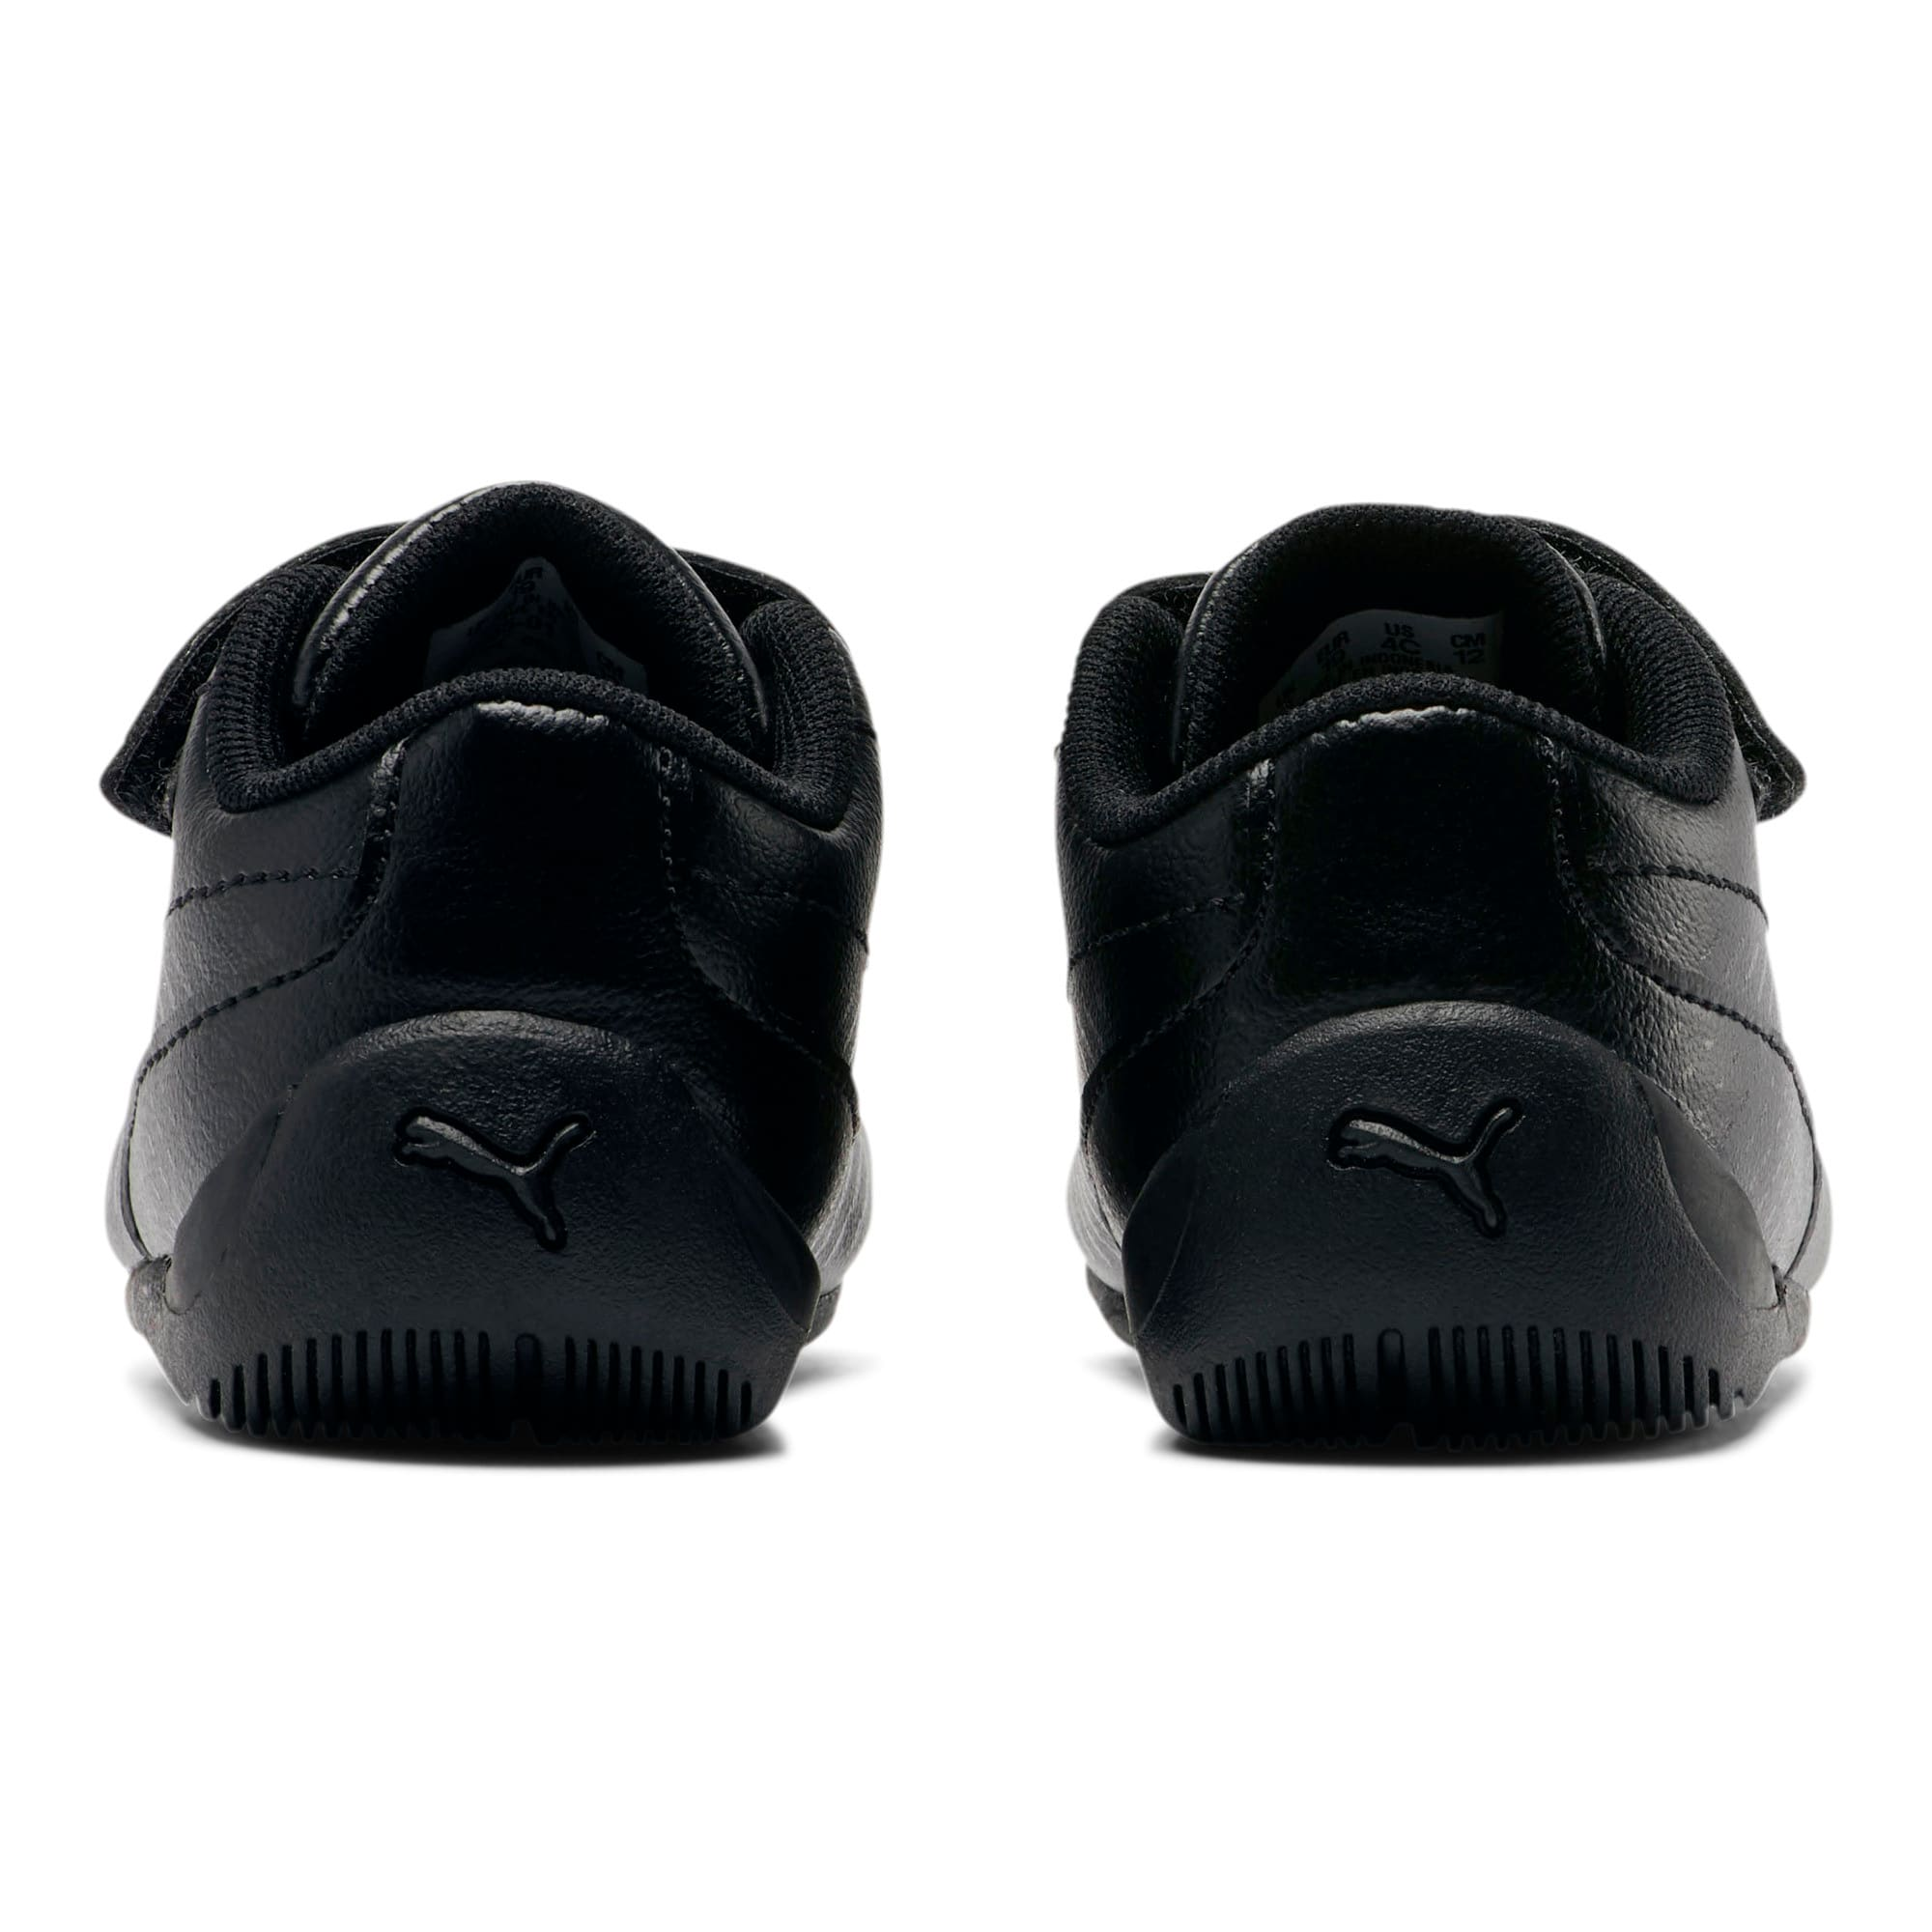 Thumbnail 3 of Drift Cat 7S Ultra Toddler Shoes, Puma Black-Puma Black, medium